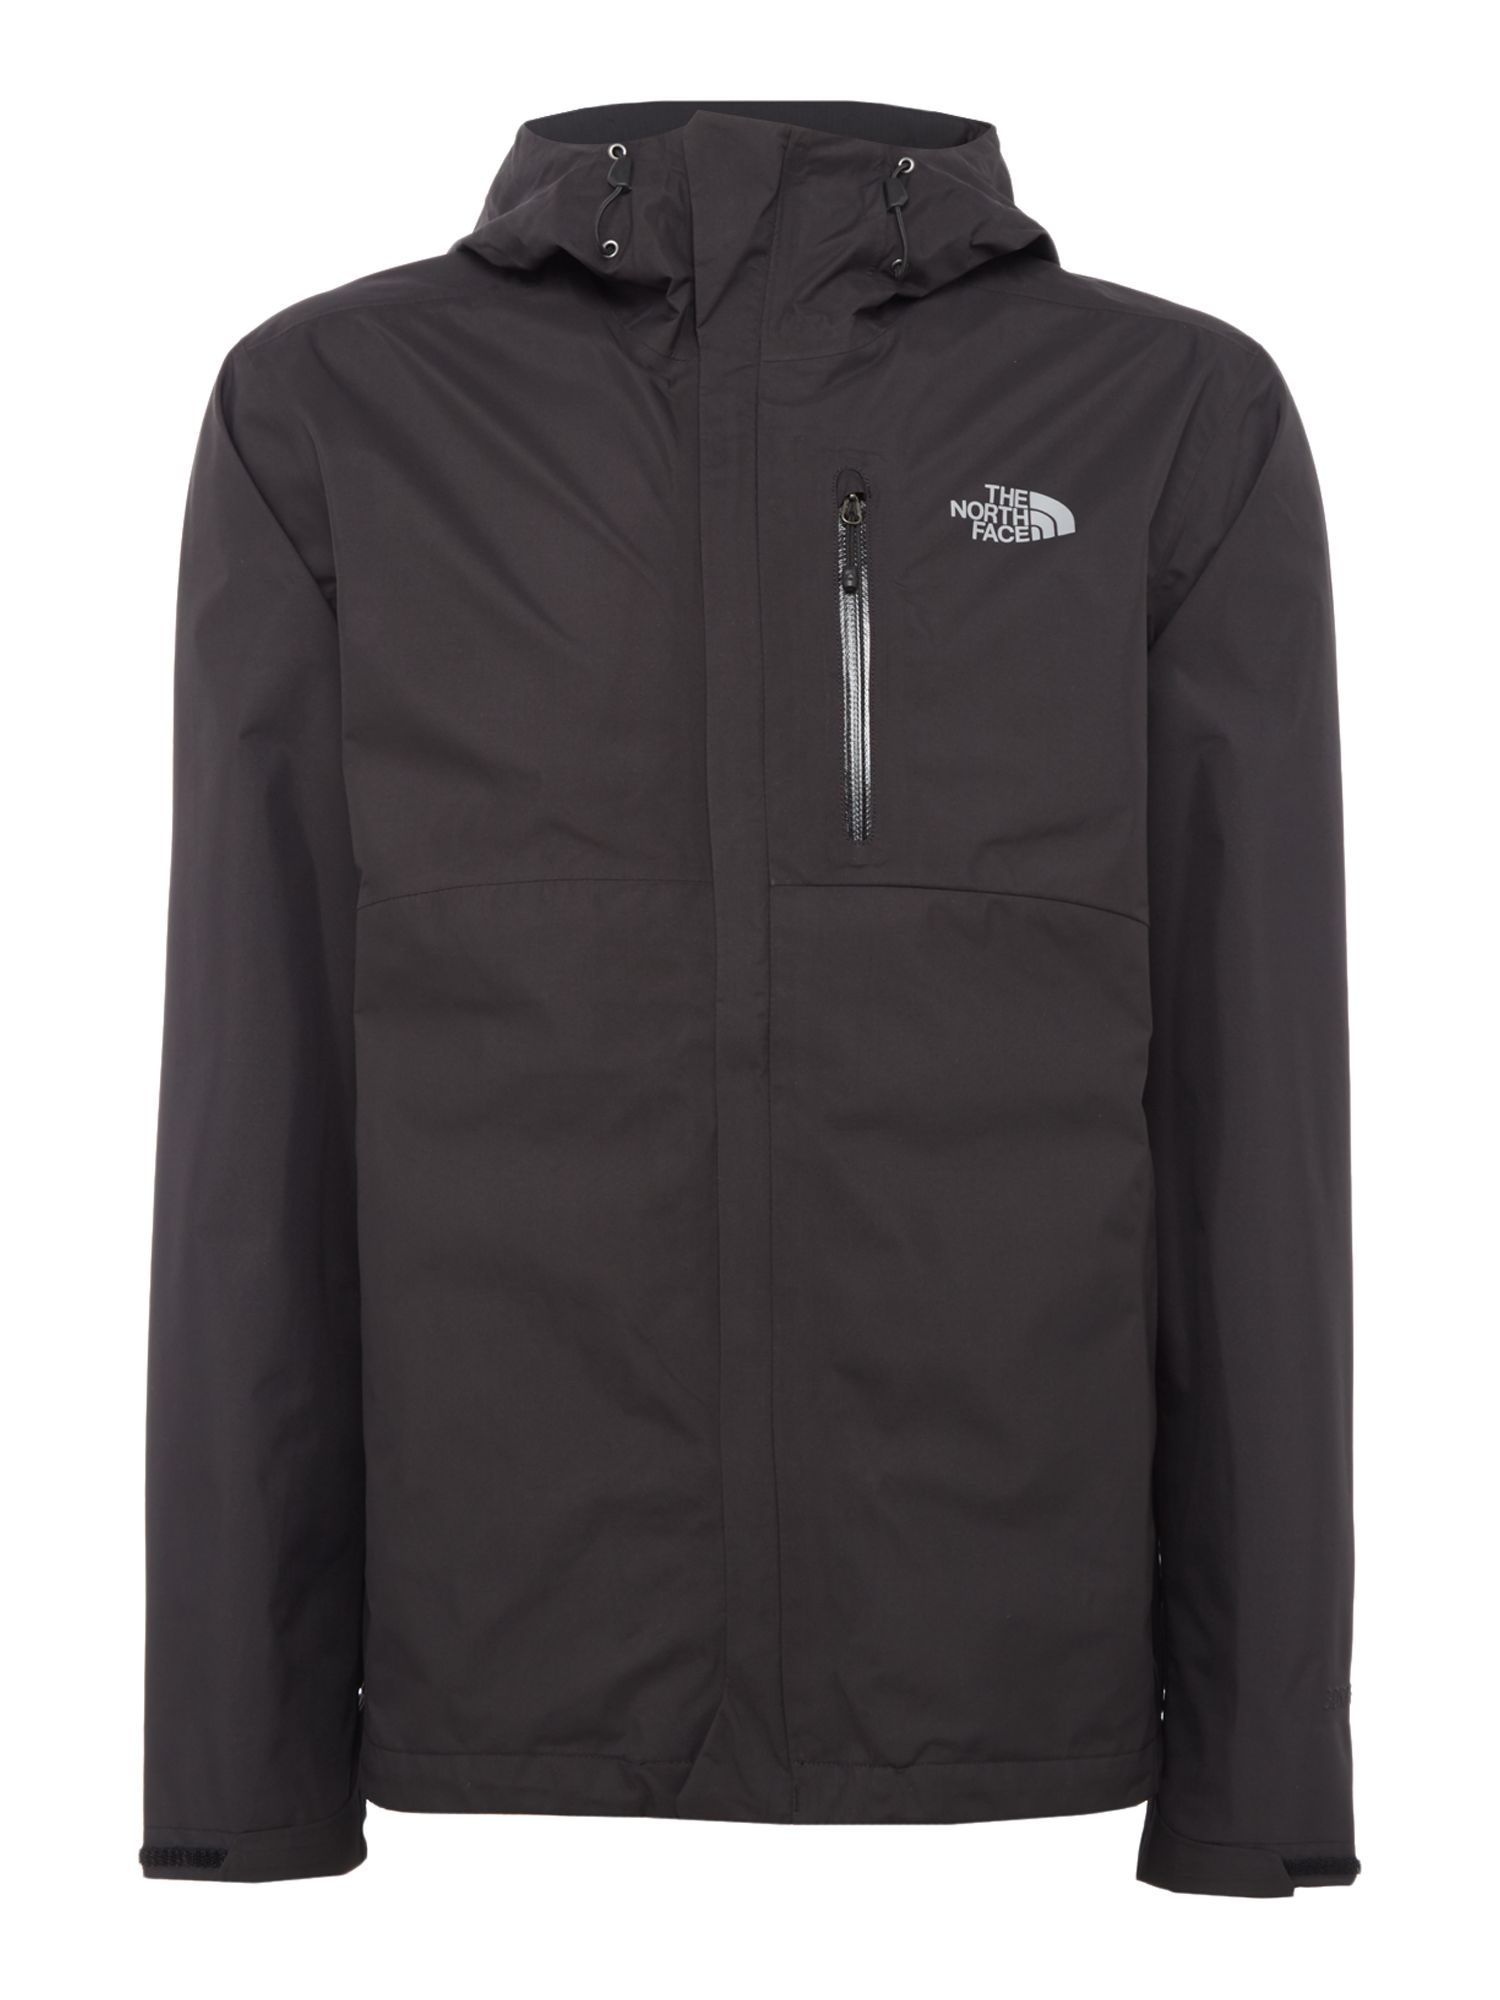 Mens The North Face Goretex waterproof dryzzle jacket Black